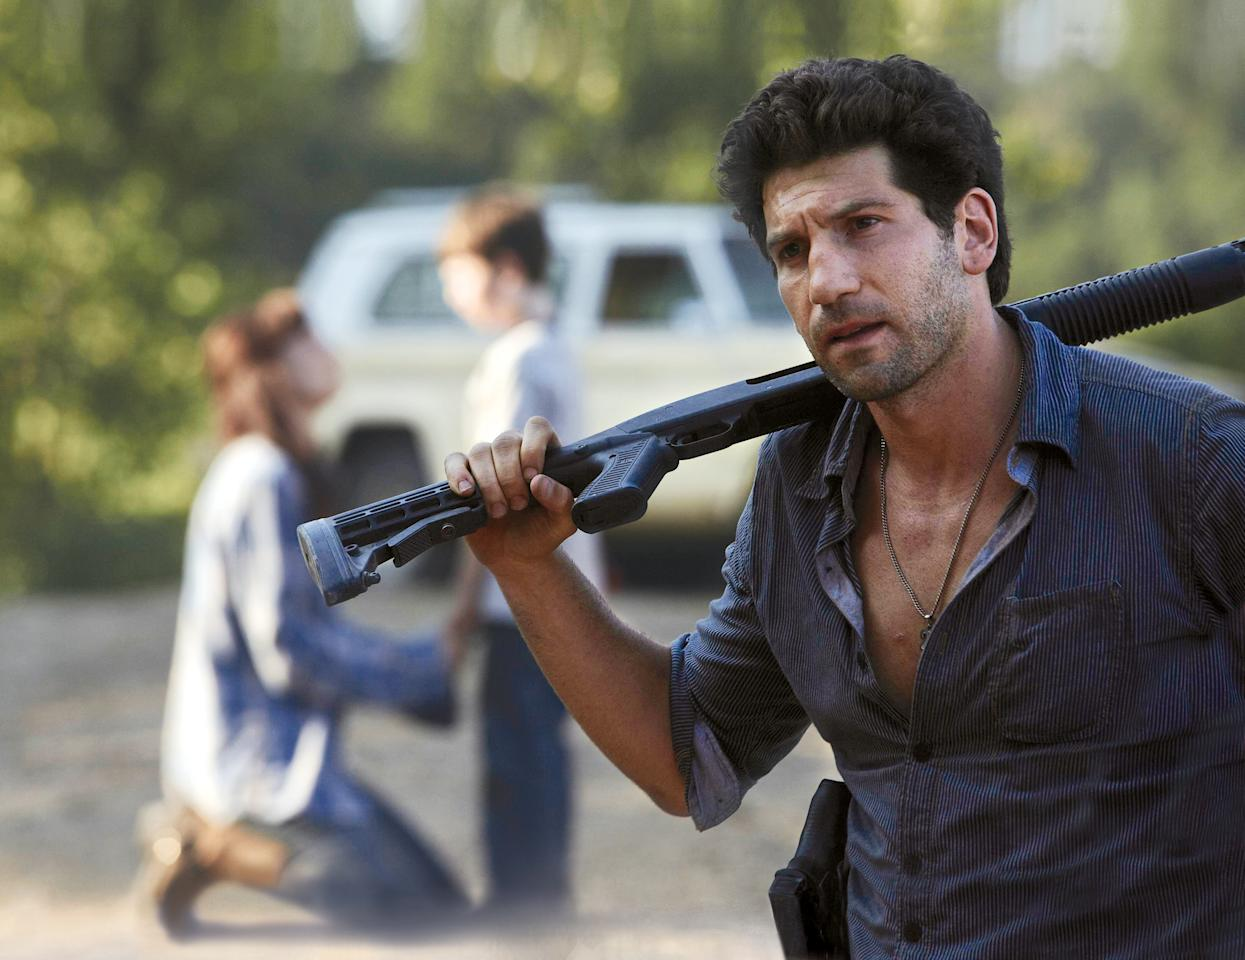 <p>He stepped up to protect Lori and Carl, and lead the group, which is admirable. But then he became unhinged and tried to murder best pal Rick several times. Not cool, bro.<br /><br />(Photo: AMC) </p>